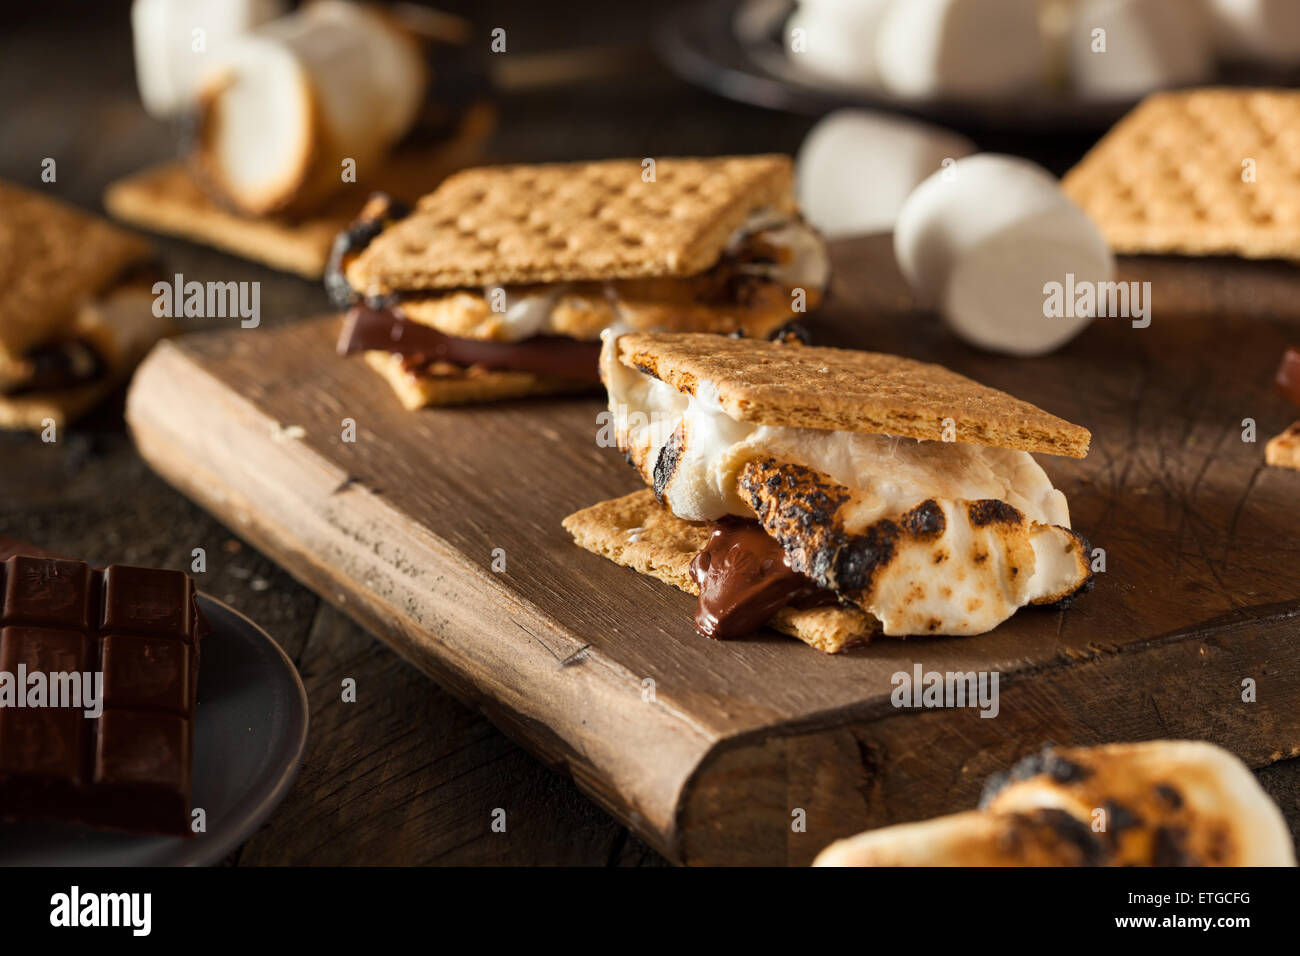 Homemade Gooey S'mores with Chocolate and Marshmallows - Stock Image